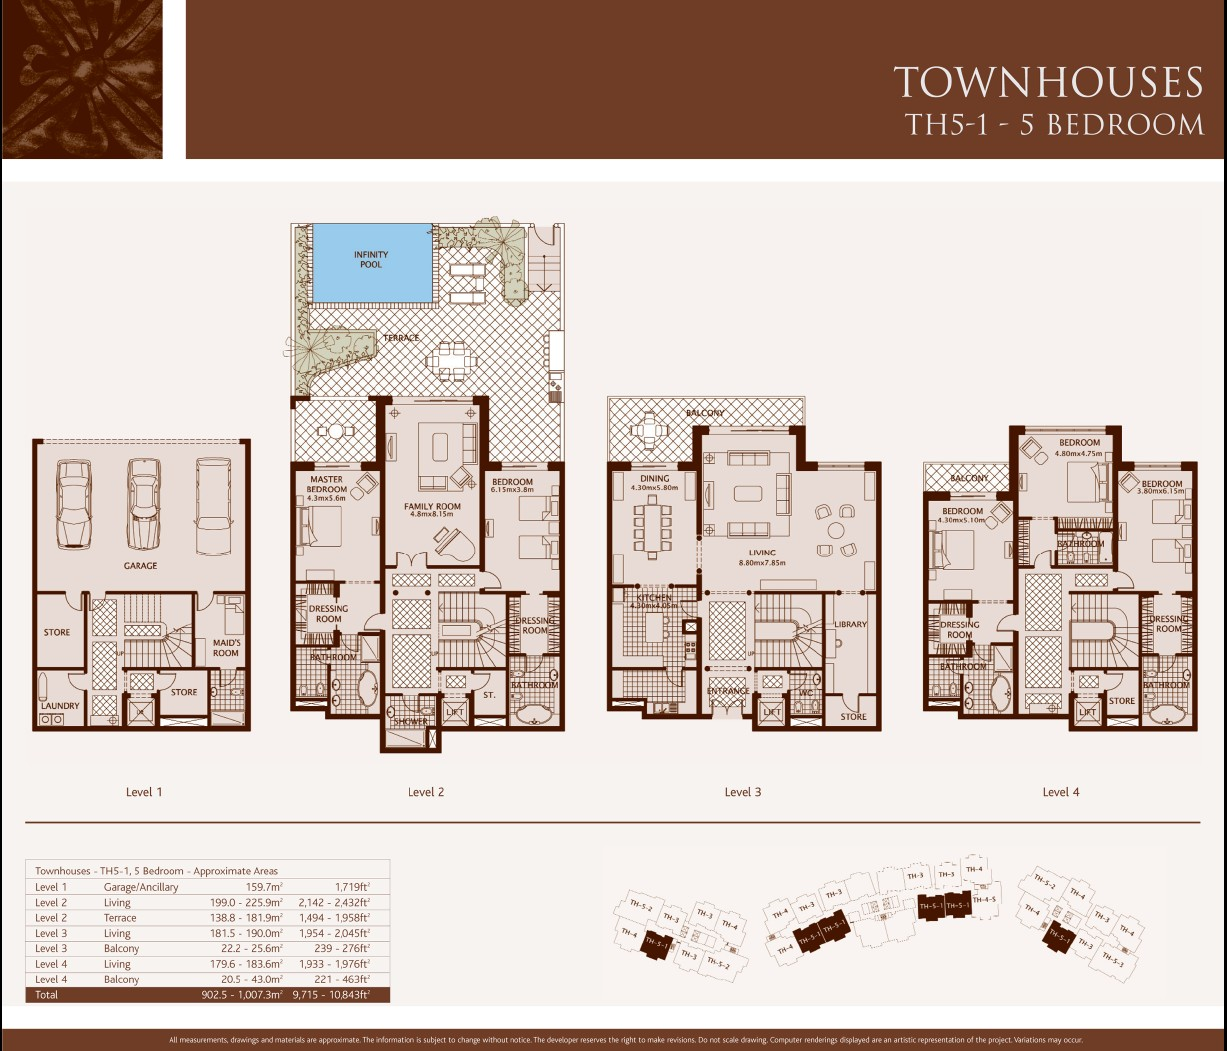 Palm jumeirah dubai floor plans for 4 bedroom townhouse floor plans